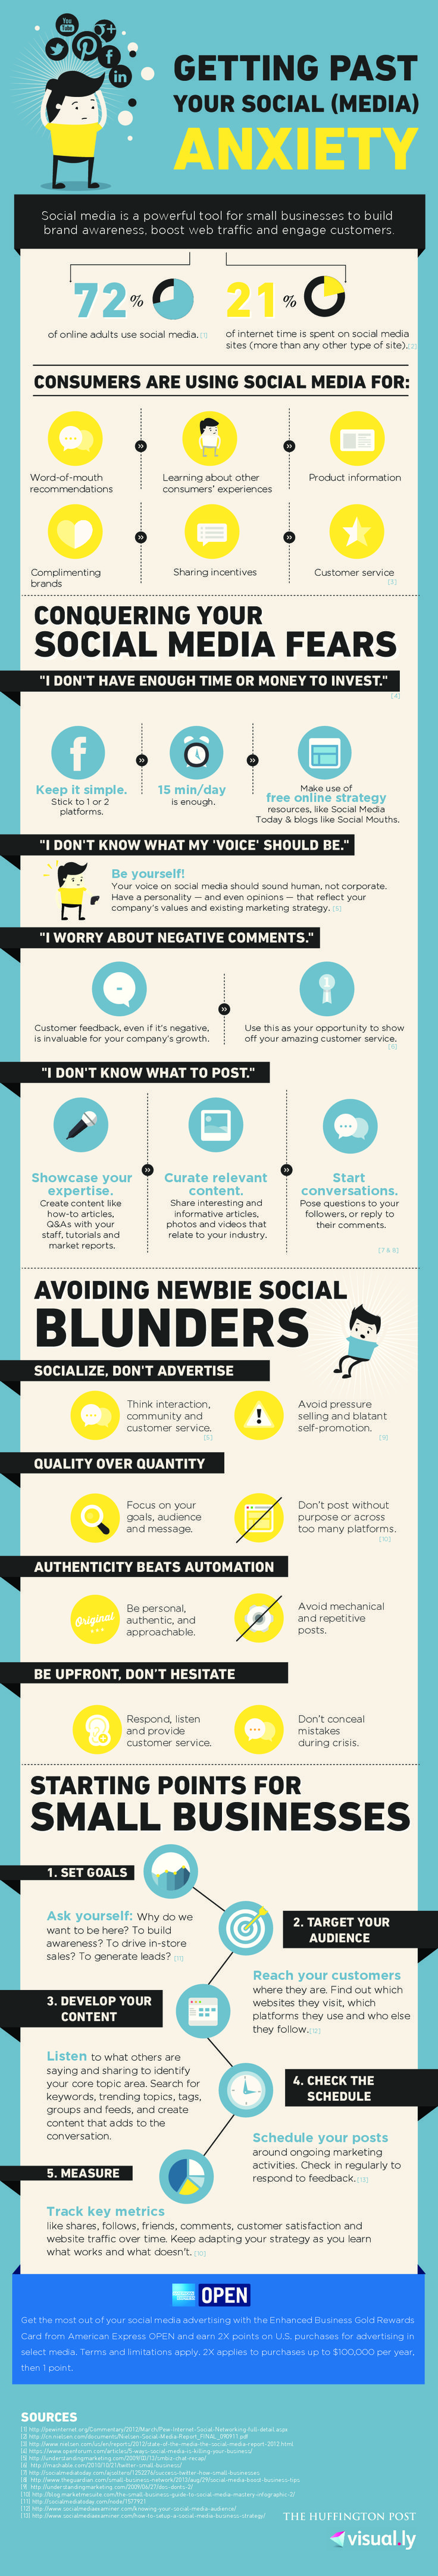 INFOGRAPHIC: The Most Common Social Media Fears And How To Get Over Them. (Perfect for Small Business Owners trying to get a start on social media)   Propel Marketing